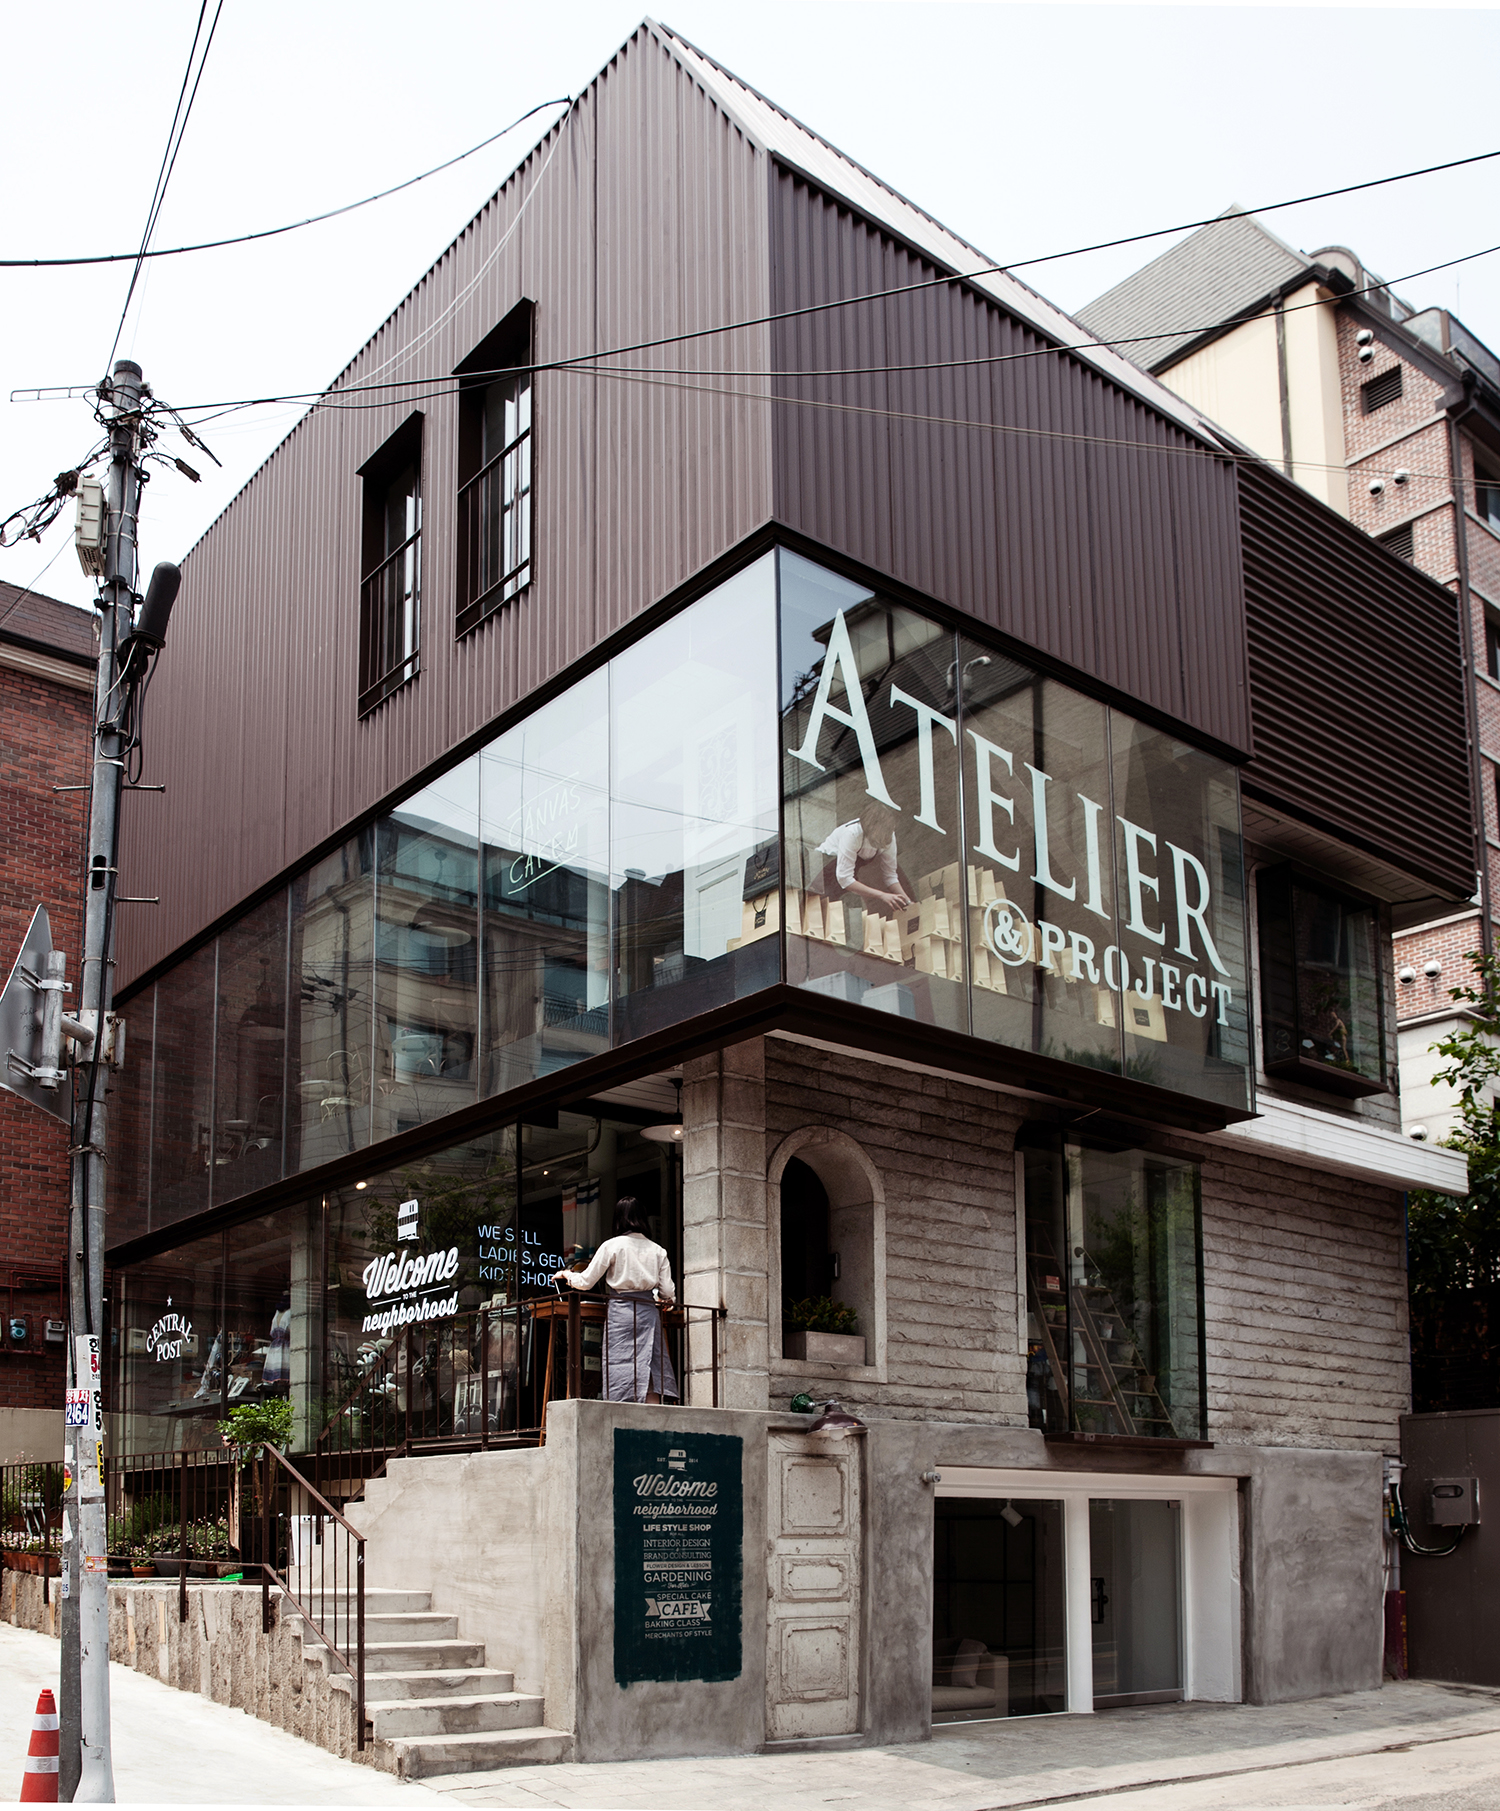 Atelier & Project. 07